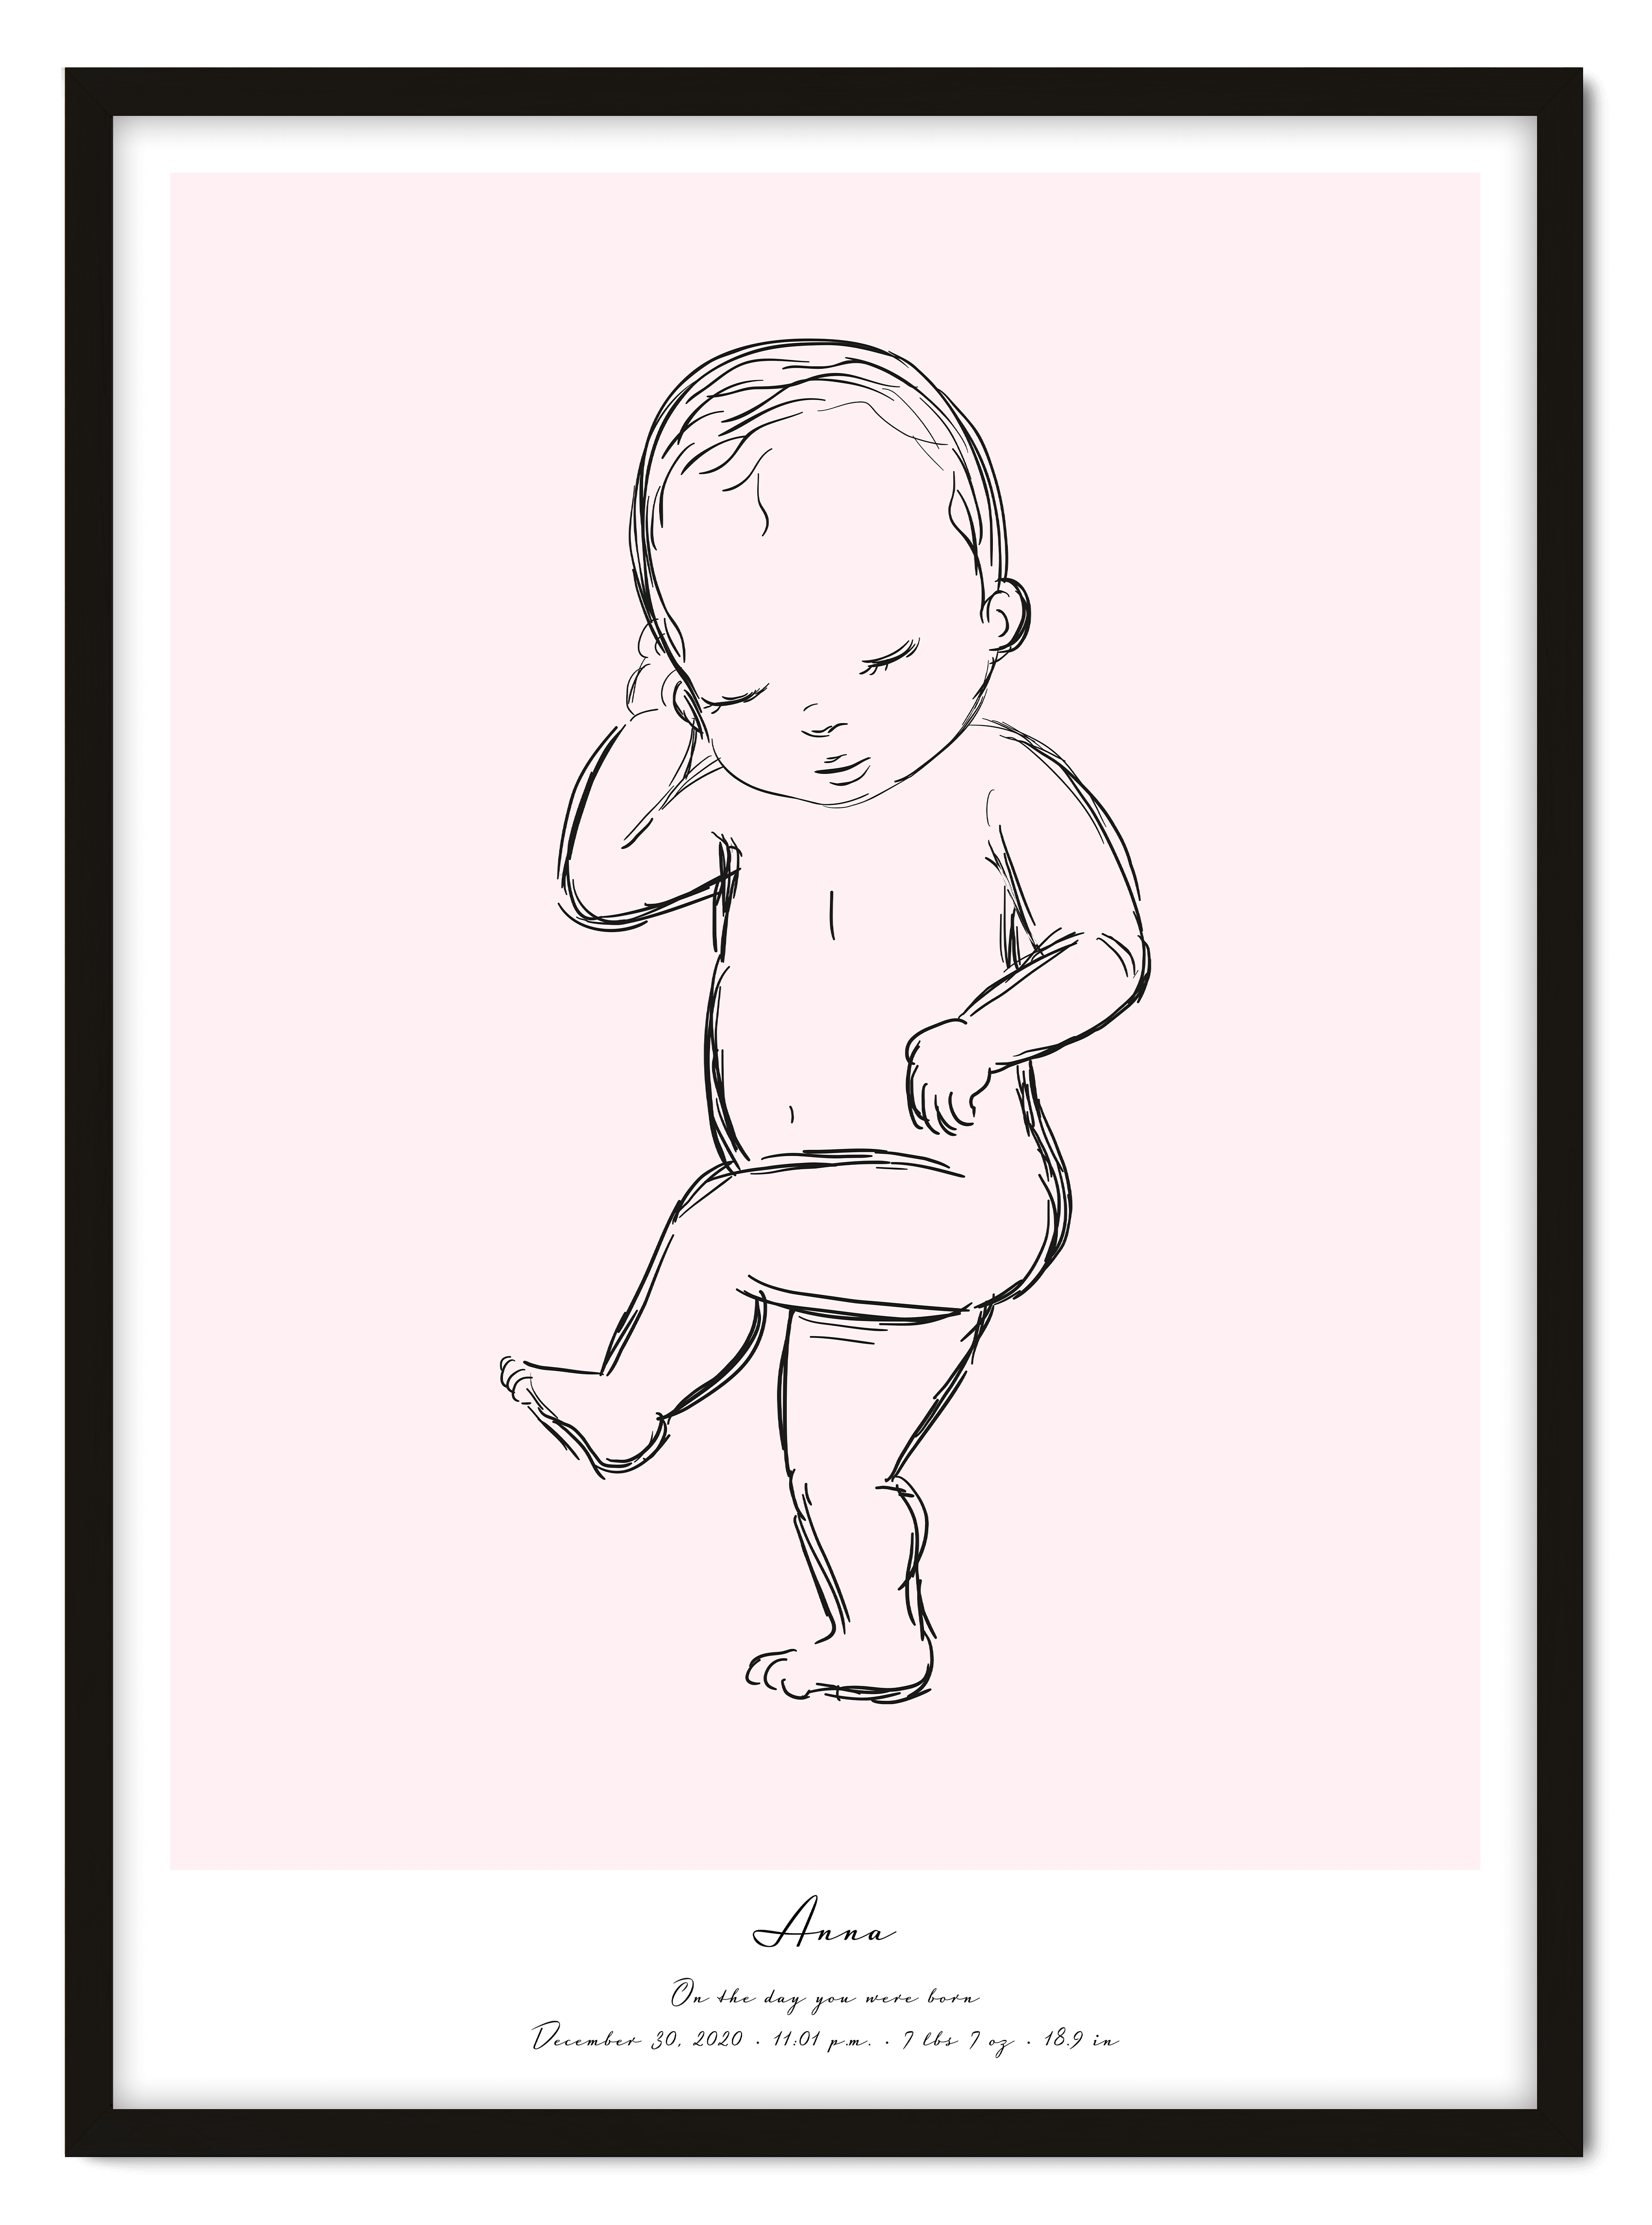 Baby Sketch - Positive Prints